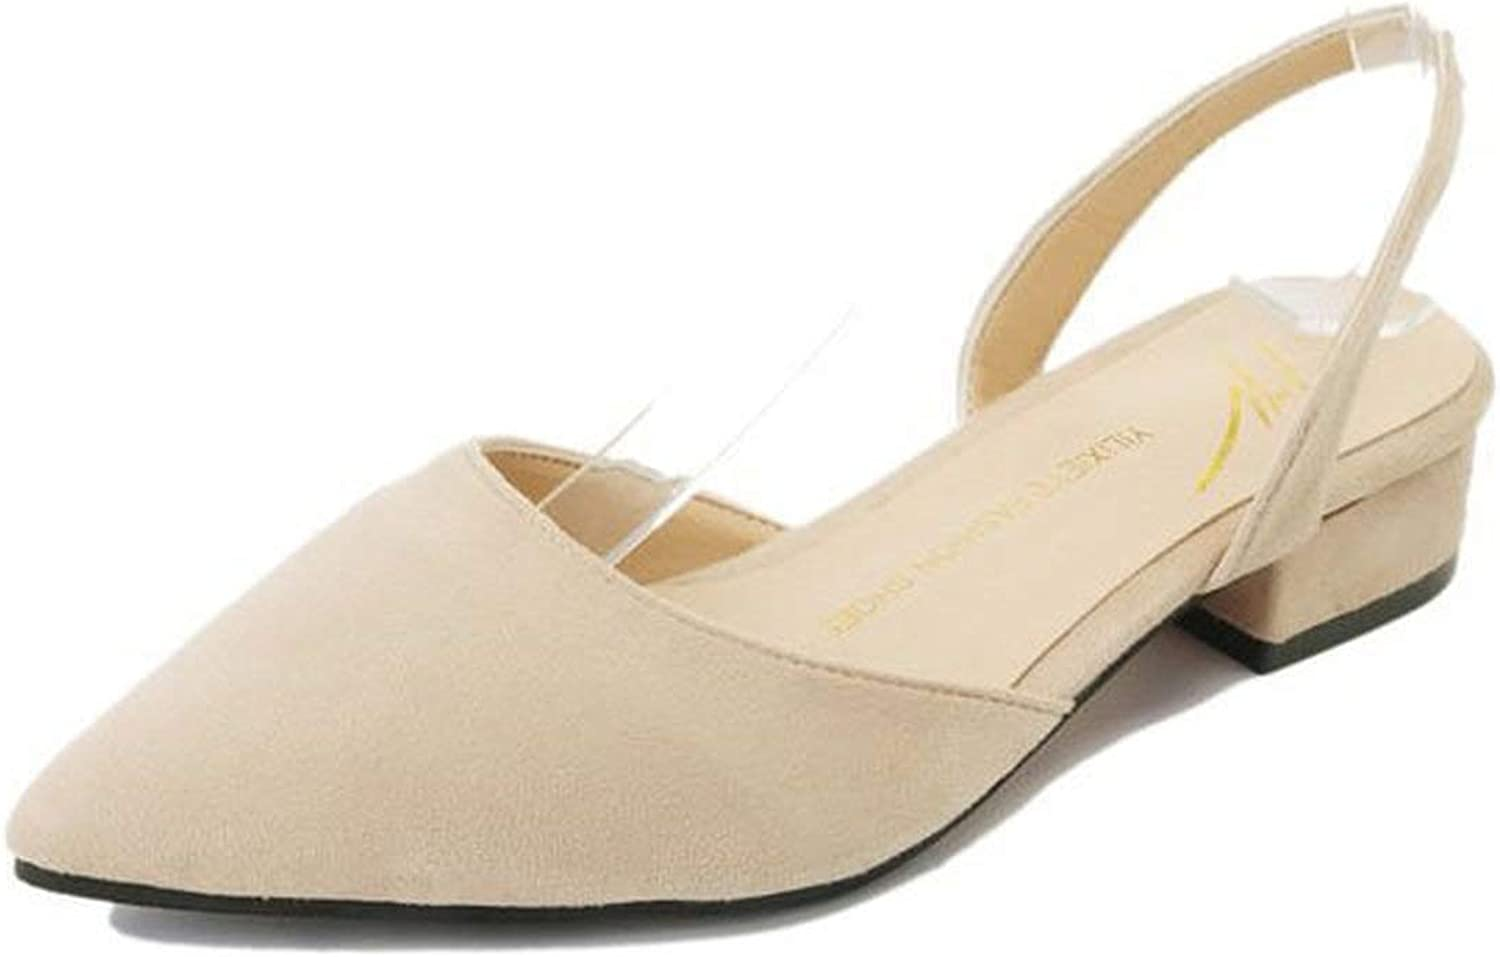 Coolemon Autumn New Pointed Thick with Sandals Suede Low Heel Casual shoes Explosion Student Sandals